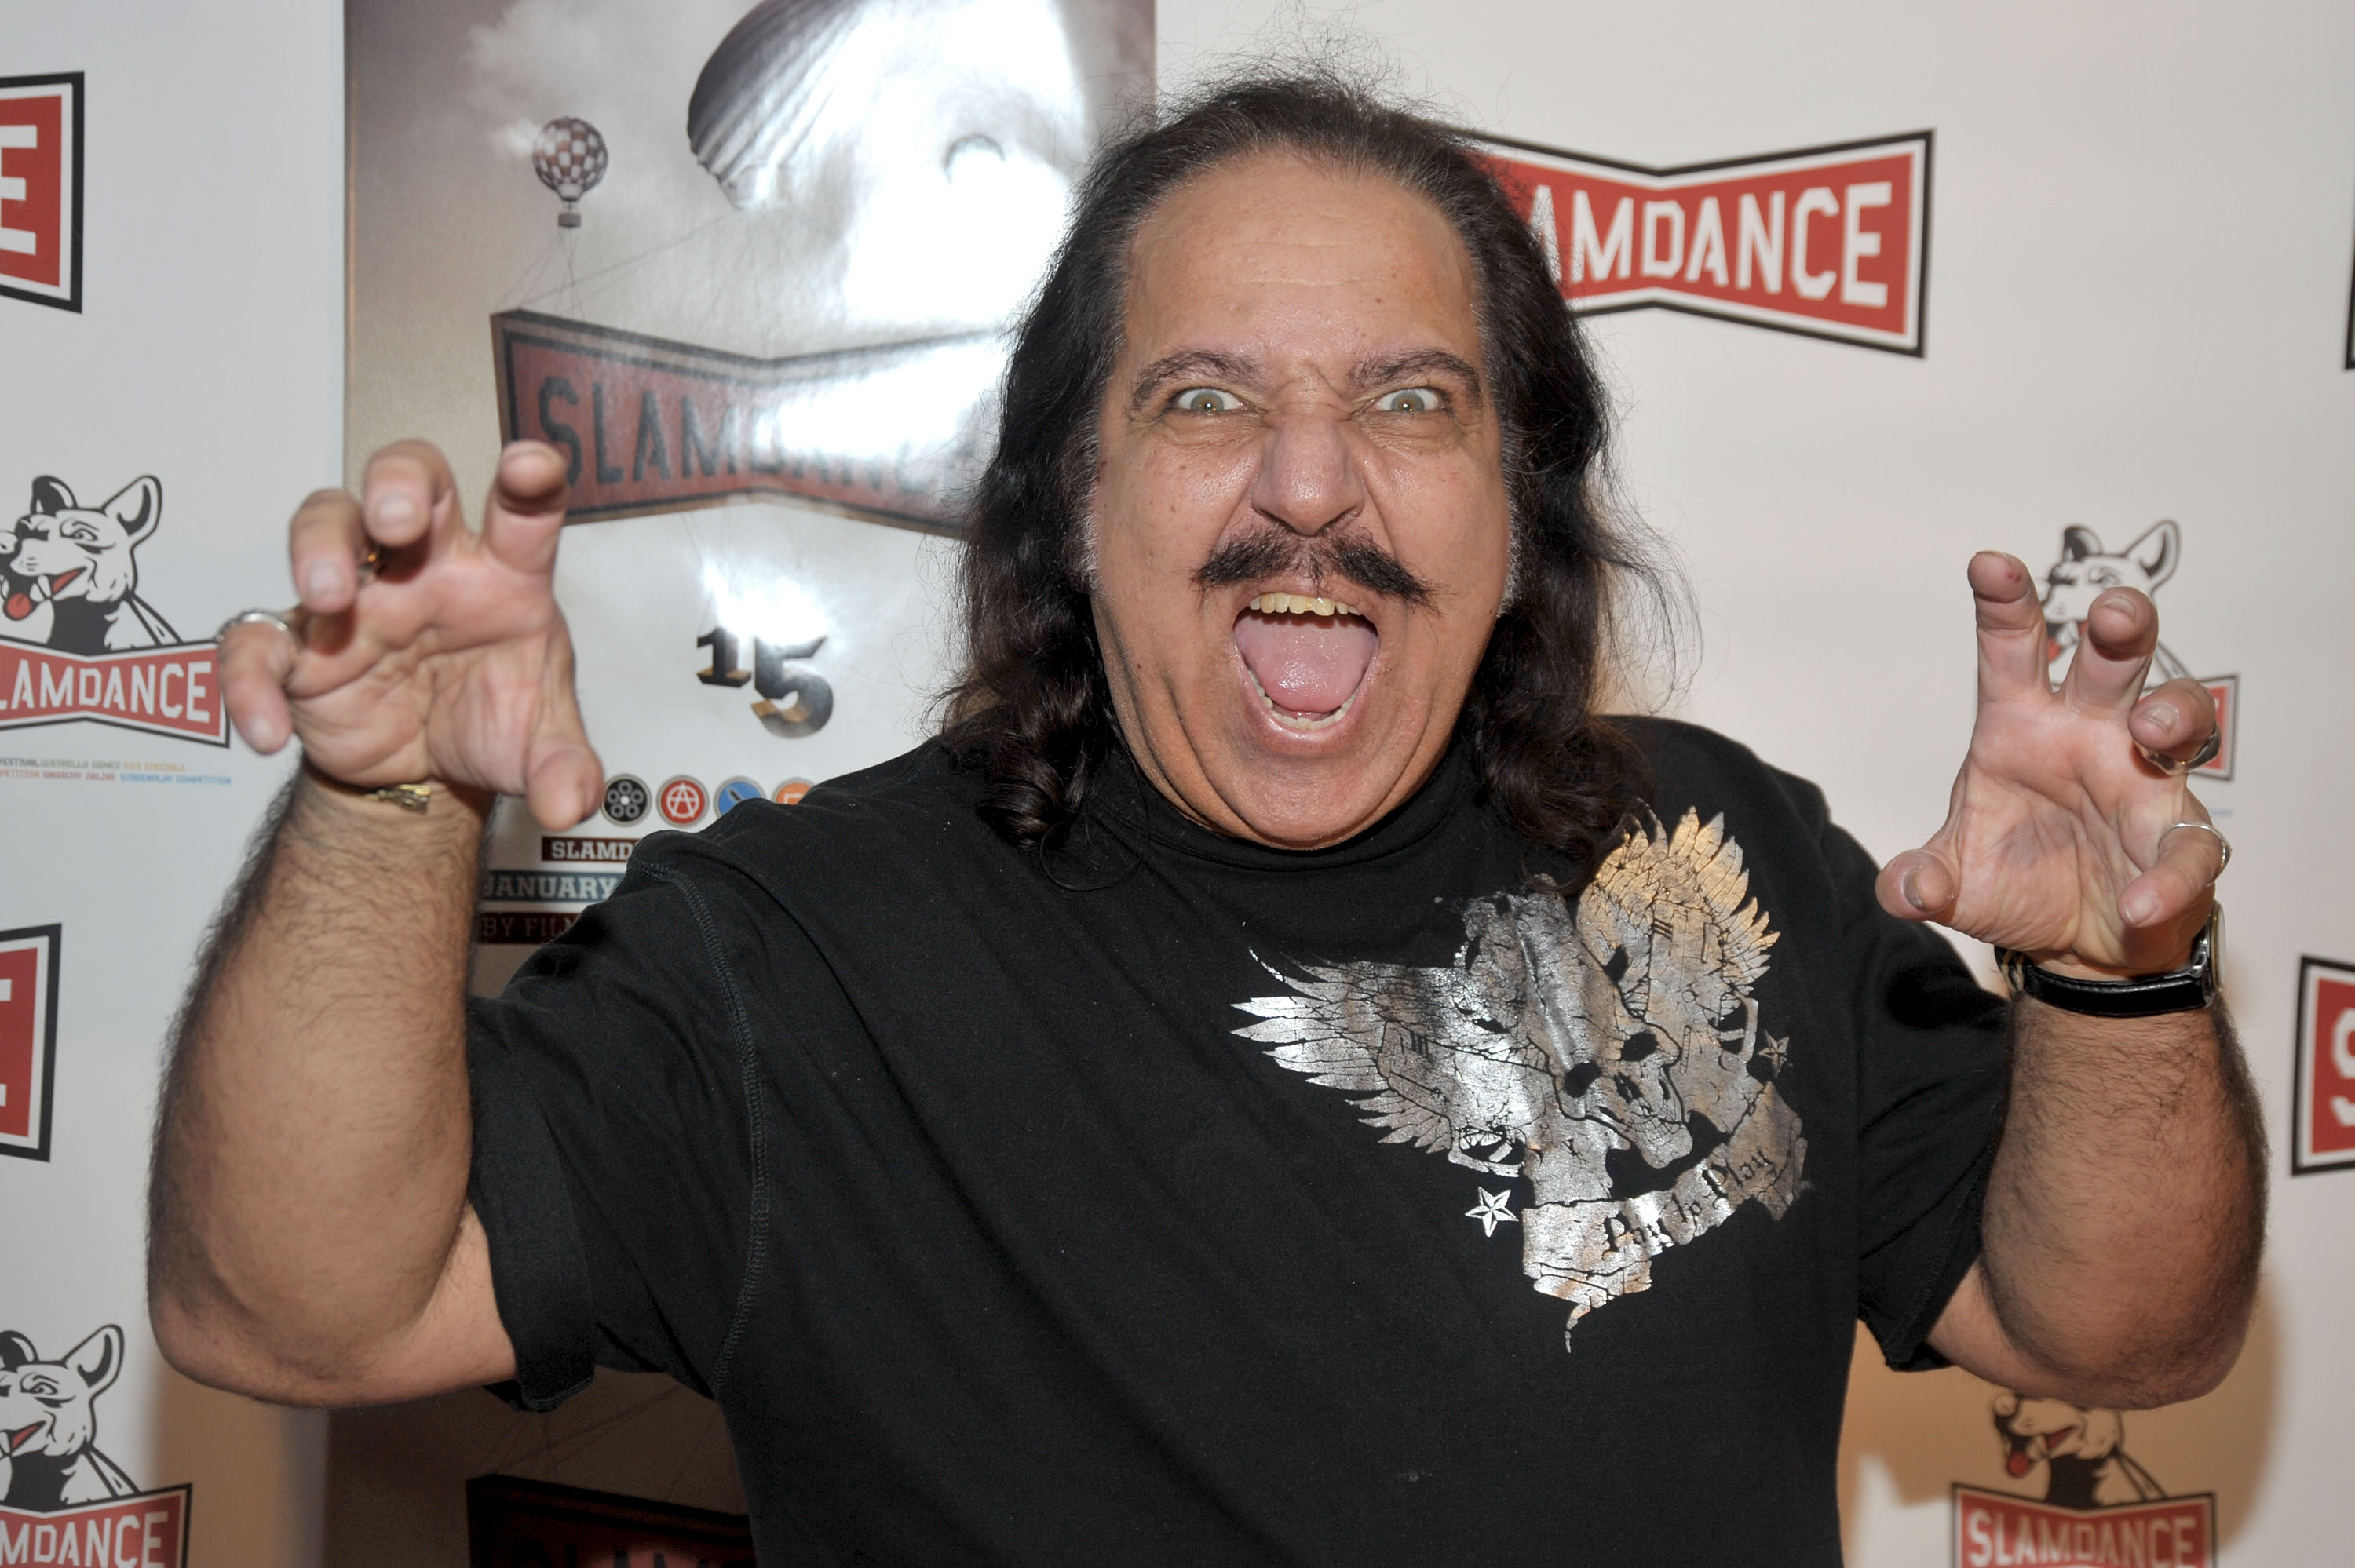 PARK CITY, UT - JANUARY 18: Actor Ron Jeremy attends the premiere of 'Finding Bliss' held at the Treasure Mountain Inn during the 2009 Slamdance Film Festival on January 18, 2009 in Park City, Utah. (Photo by Frazer Harrison/Getty Images)